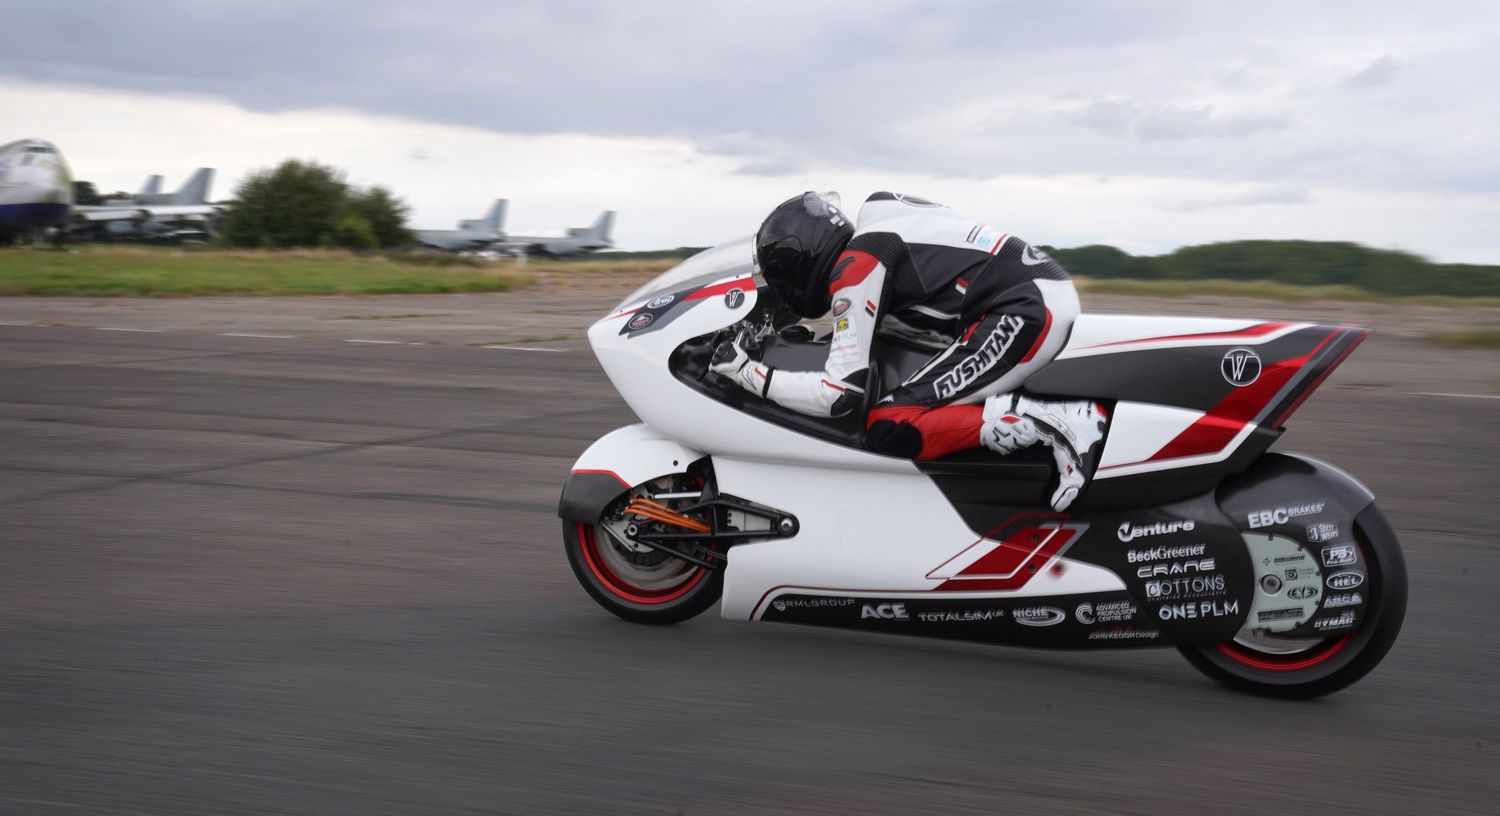 The WMC crew is targeting the current world record, which stands at 228.05 mph.